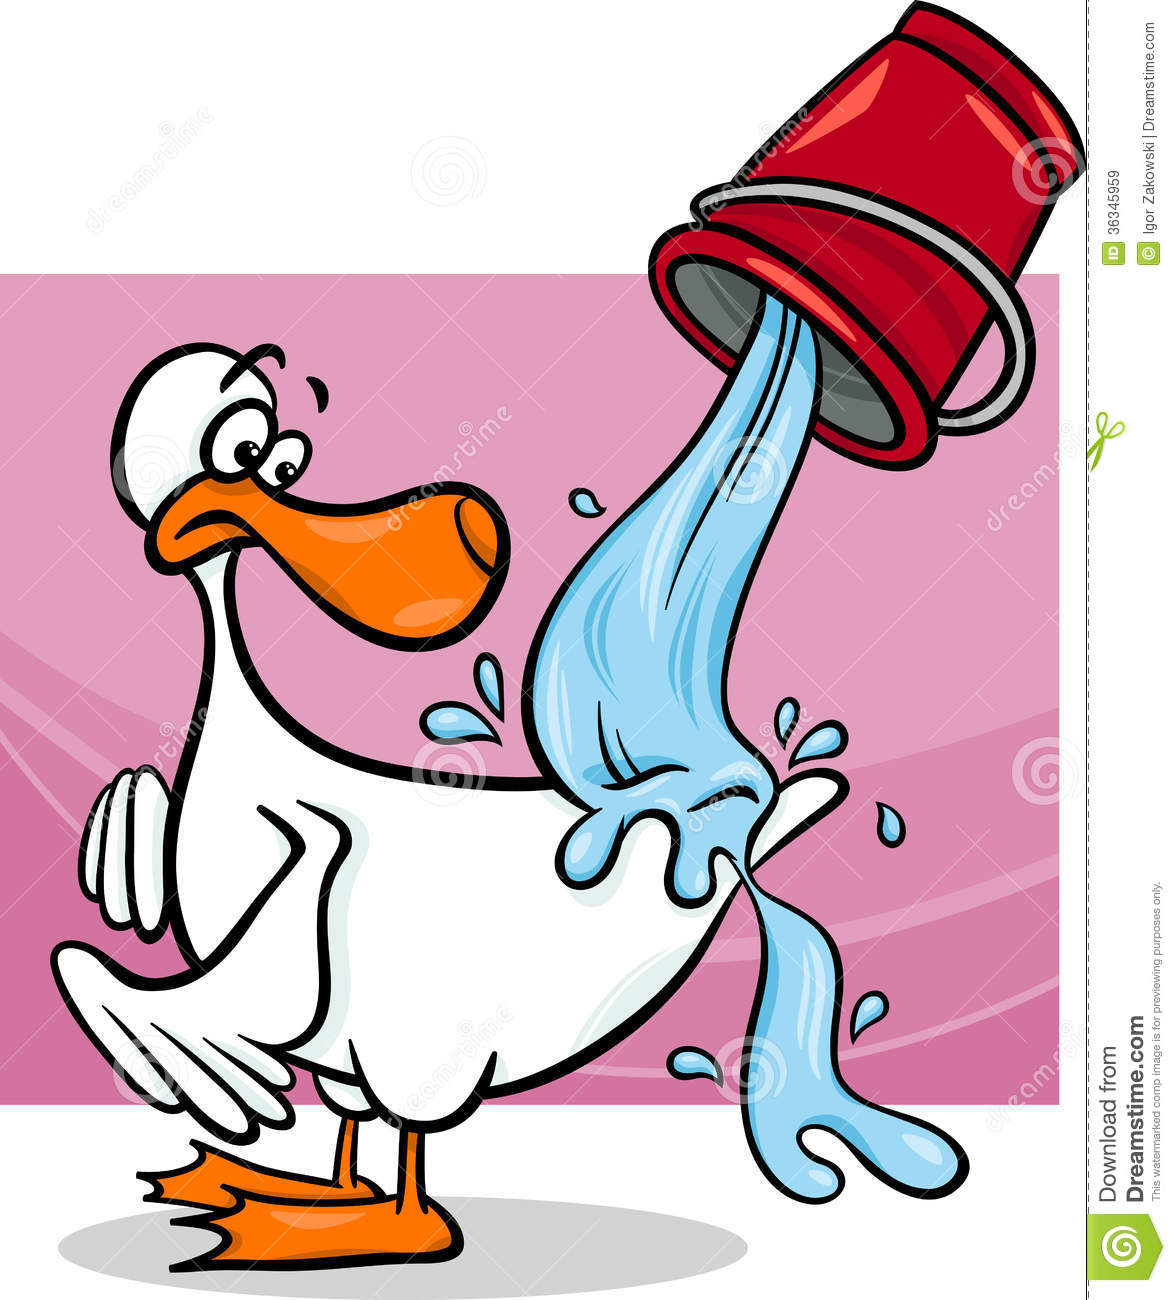 water off a ducks back cartoon royalty free stock images